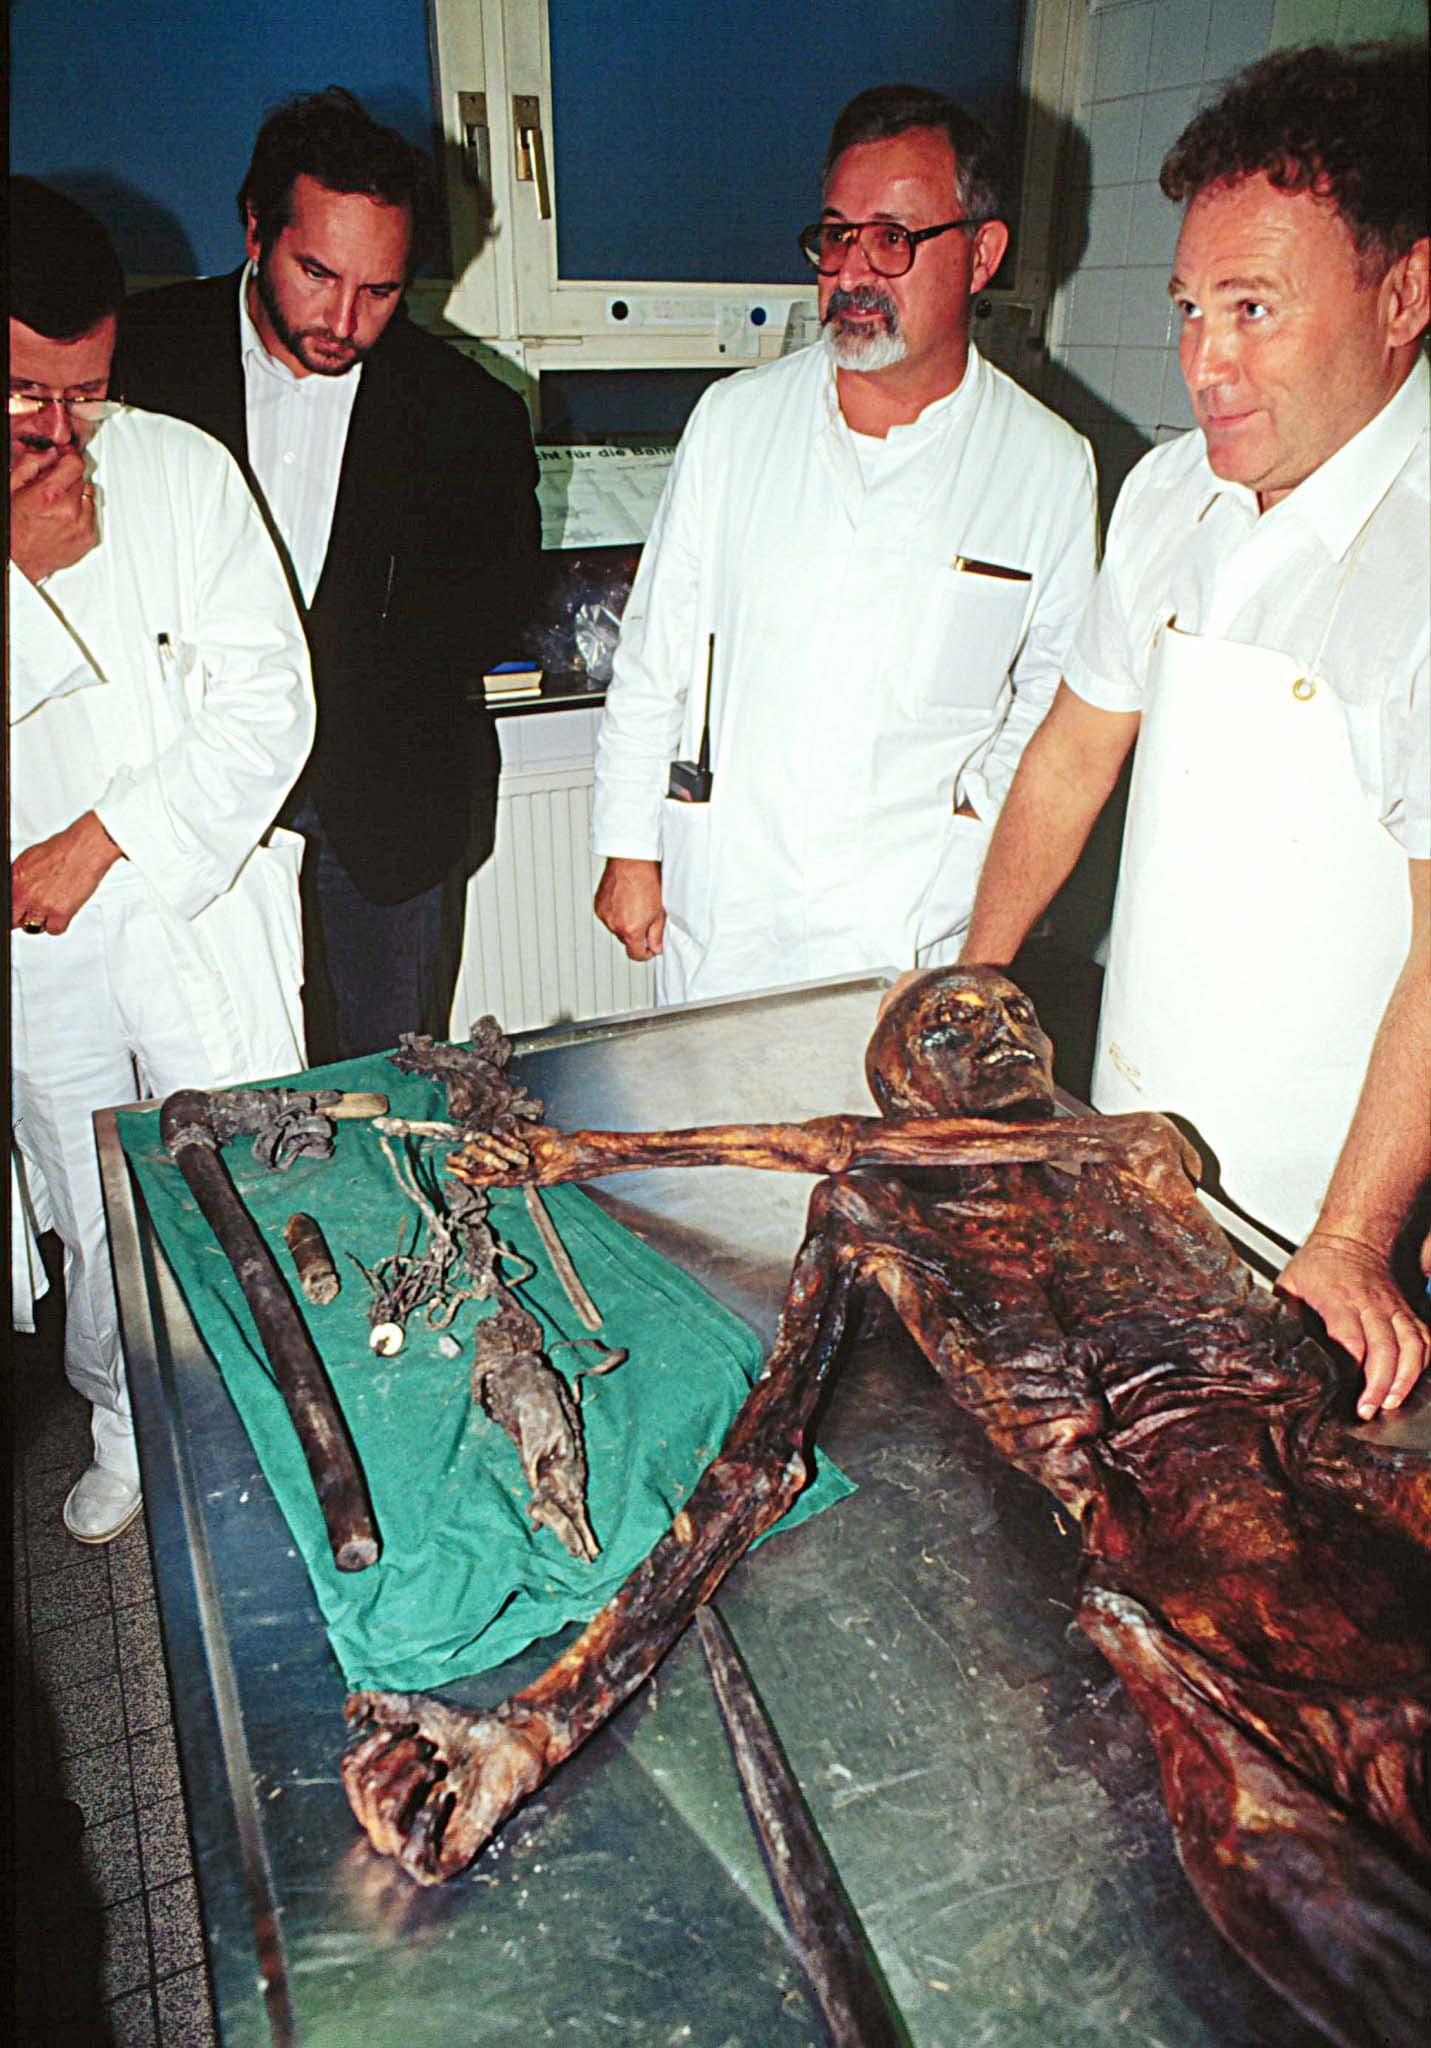 The 5,000-year-old body of a hunter discovered in 1991 by German hikers on the Similaun glacier at a 3,000 meters altitude (10,000 feet), on the Italian side of the Alps, and taken to the Austrian town of Innsbruck, where it's actually preserved. Seven years after it's recover authorities have decided that the Bronze Age mummy will be brought back to the Italian town of Bolzano Friday, January 16 1998, where a special museum has been built for it. (AP Photo) Innsbruck,Austria, Sep 24--Frozen Body--Scientists of the Institute of Early History at the University of Innsbruck, started to study the frozen well-preserved body, that was found by tourists in the Austrian Alps. First estimates said, the corpse is between 3.500 and 4.000 years. (PE/str/s.n.s.) 1991